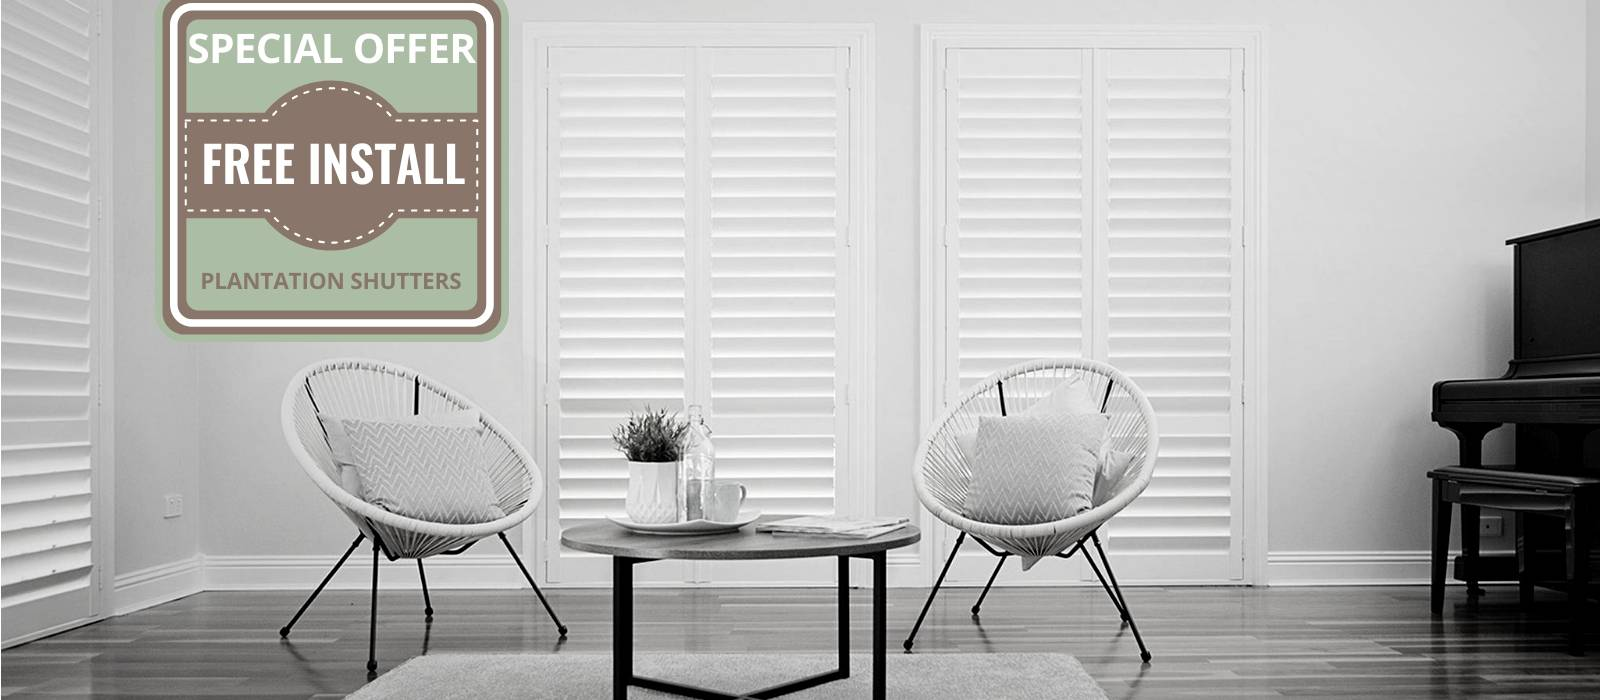 Free Installation on Plantation Shutters